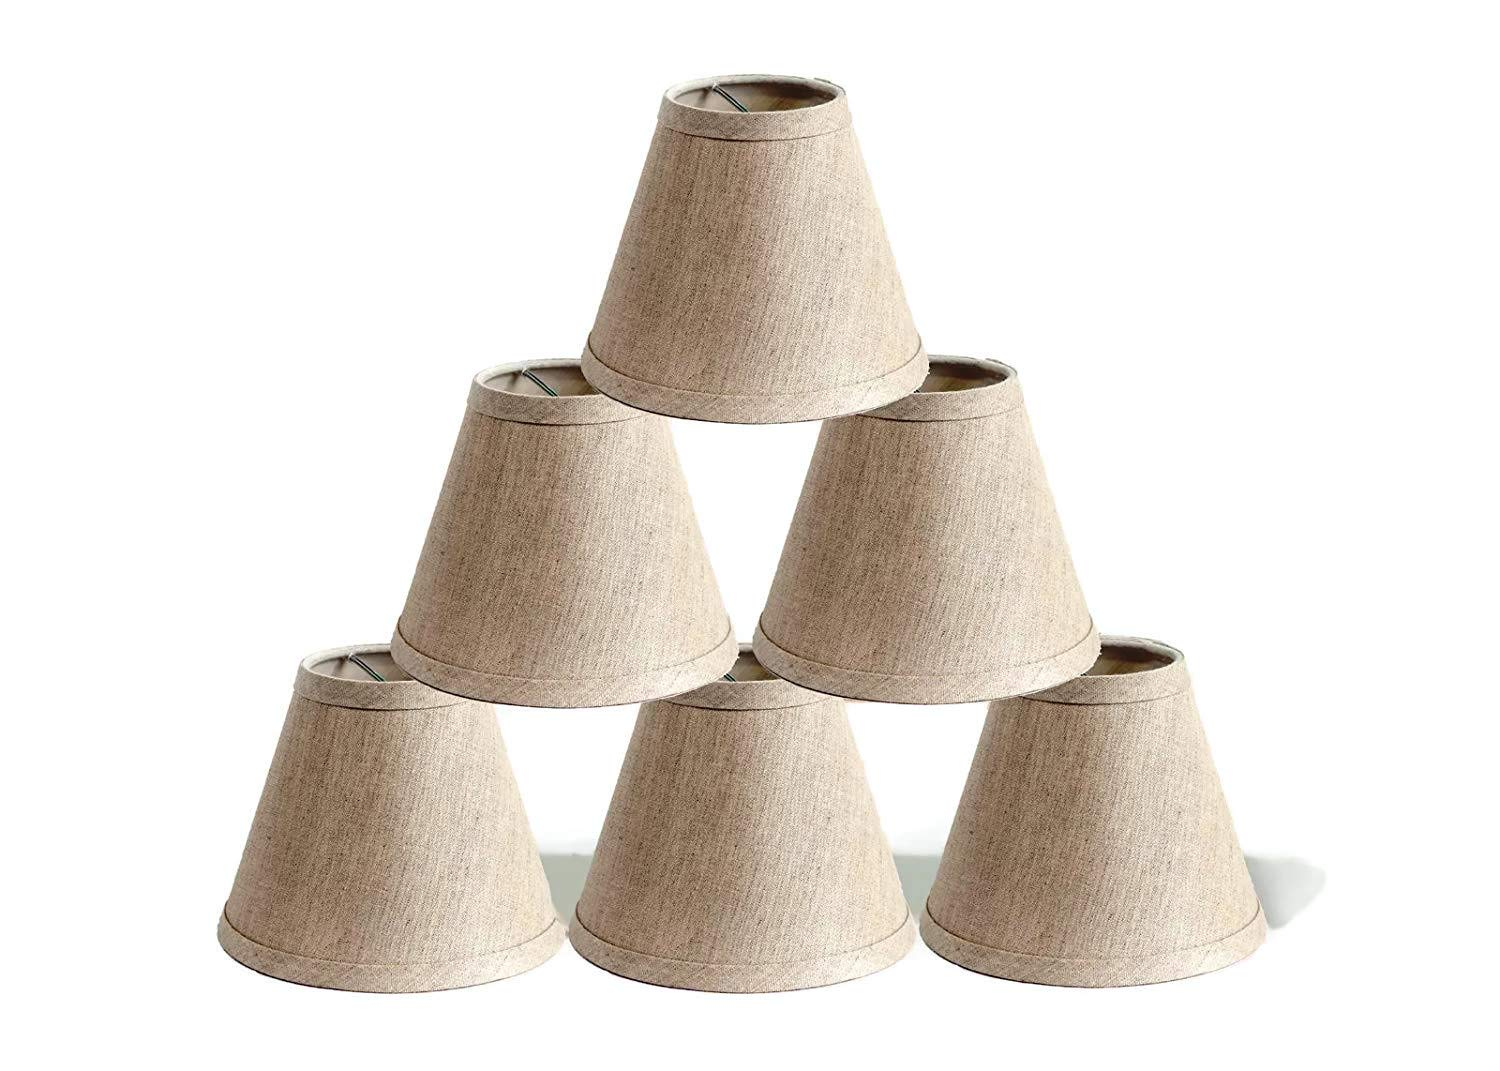 Urbanest Pure Linen Chandelier Lamp Shades, 6-inch, Hardback Clip On, Oatmeal(Set of 6) by Urbanest